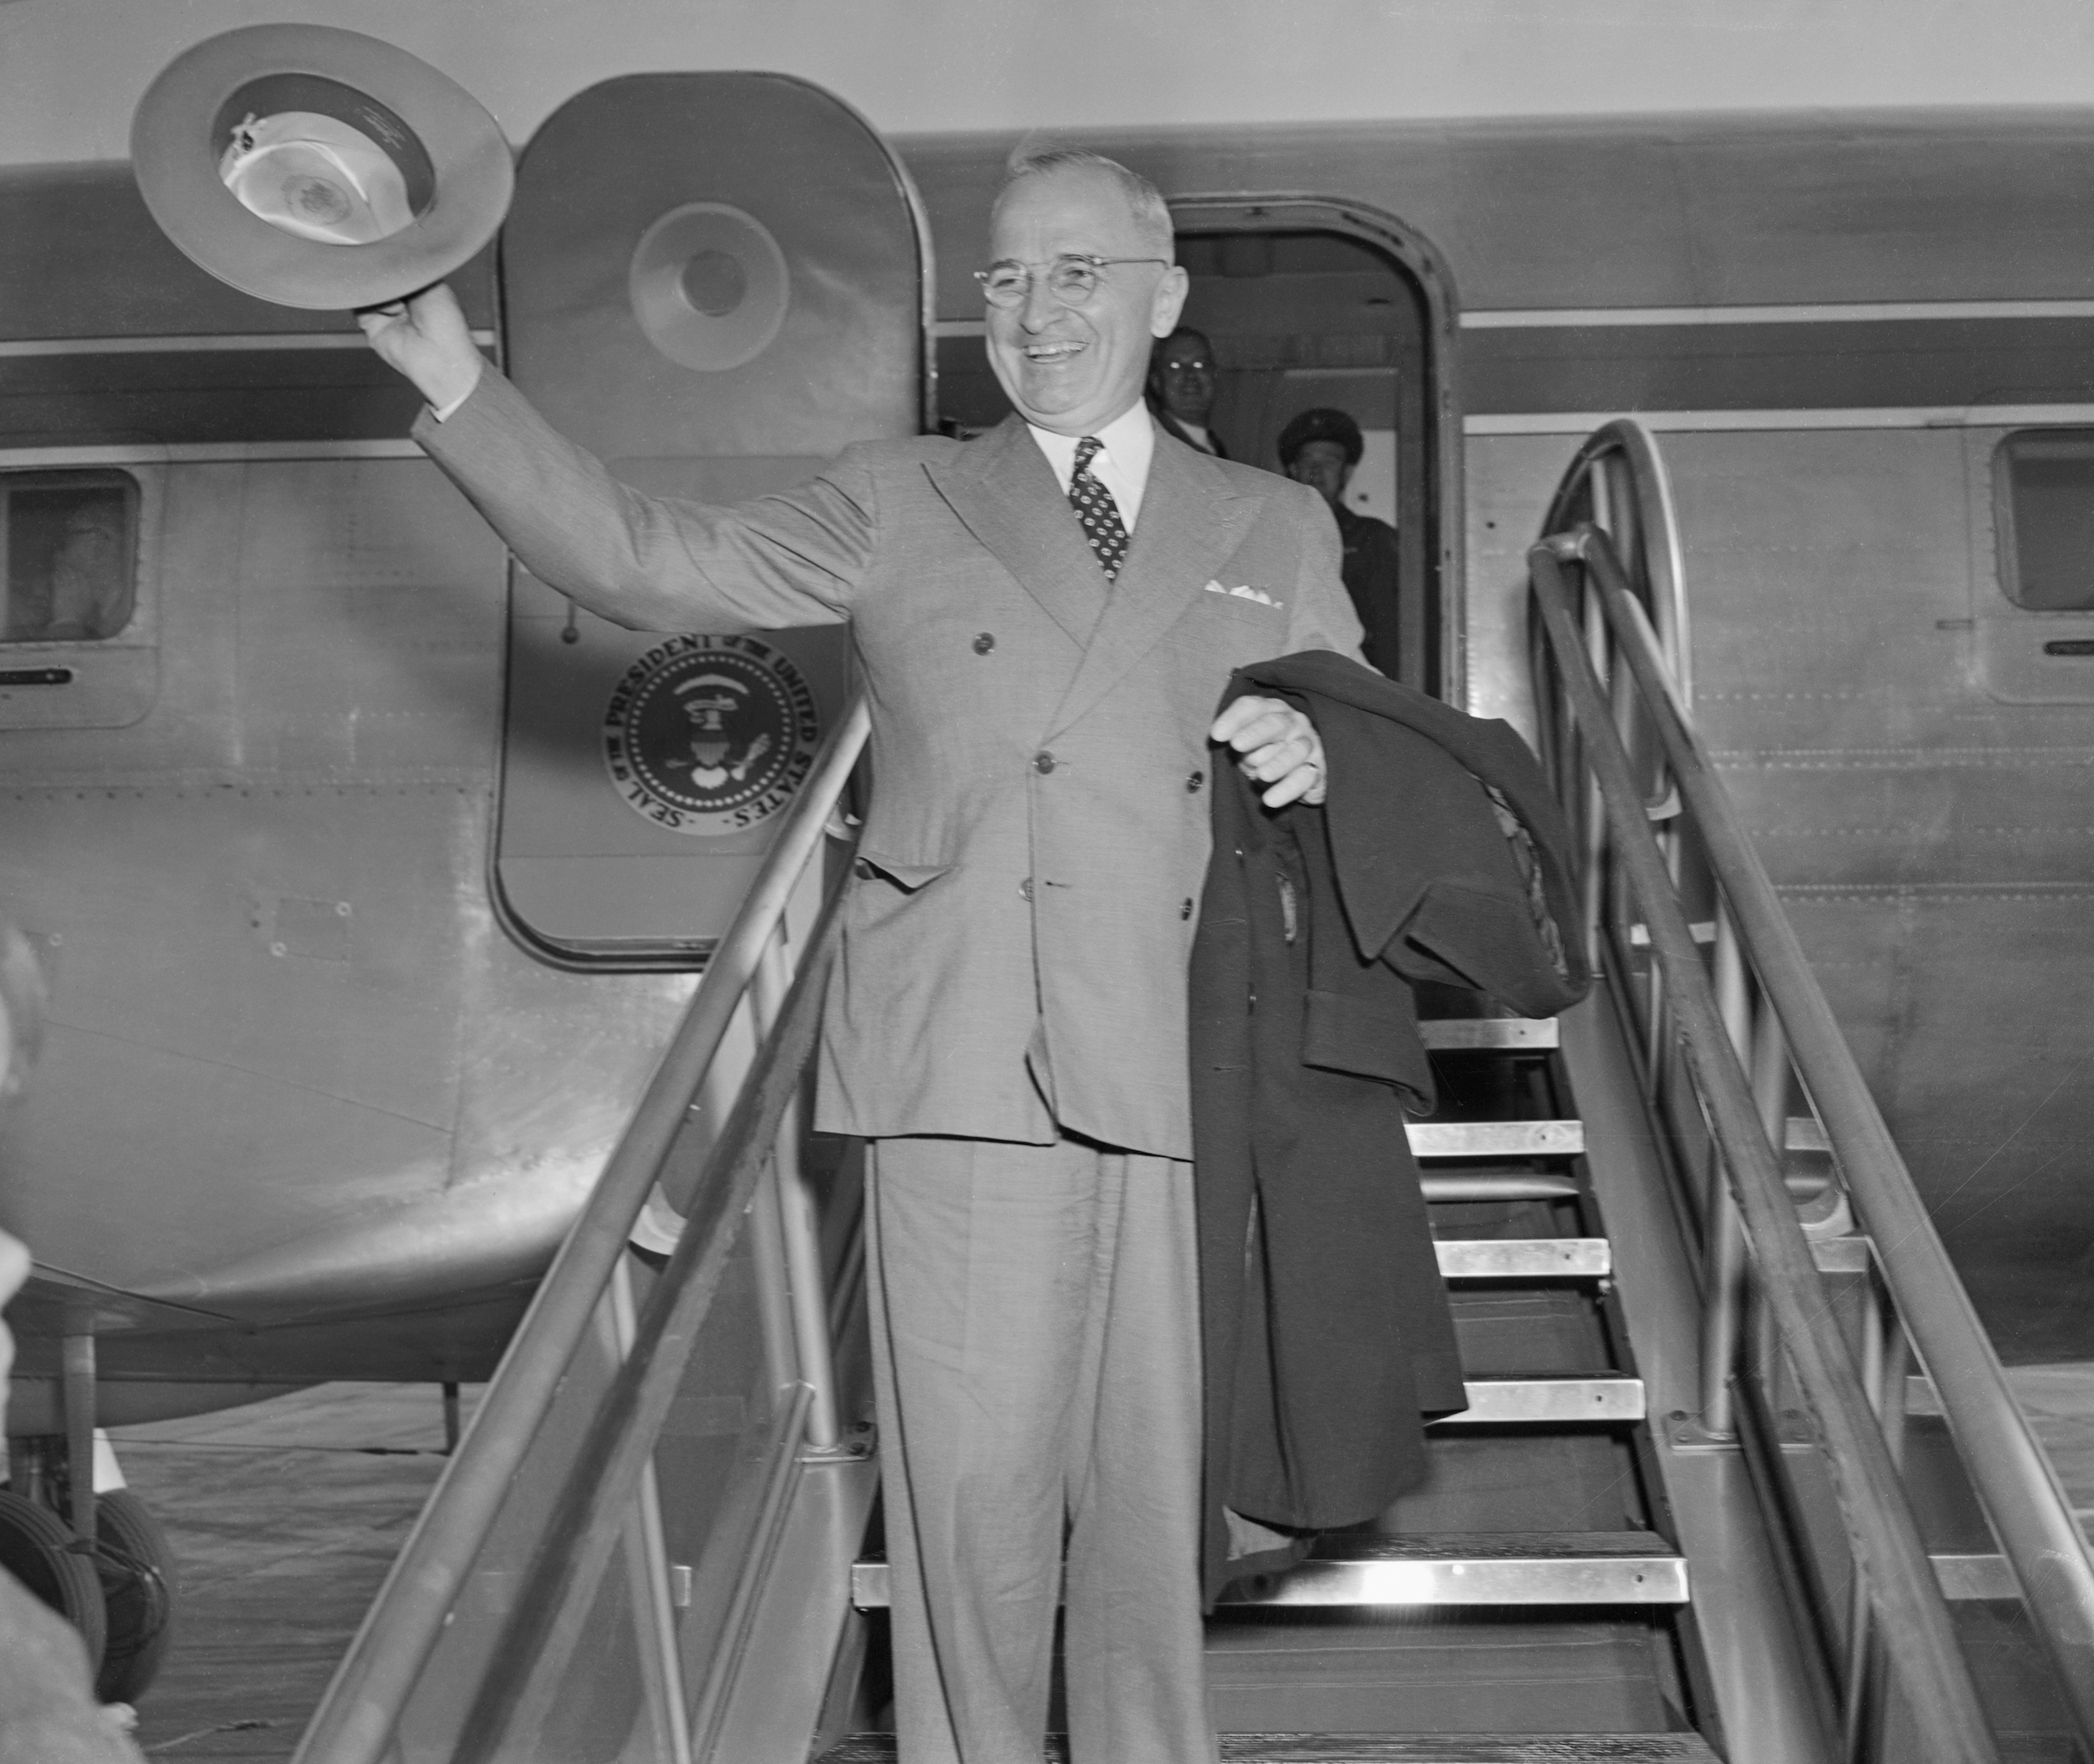 President Truman at Washington National Airport in 1948.